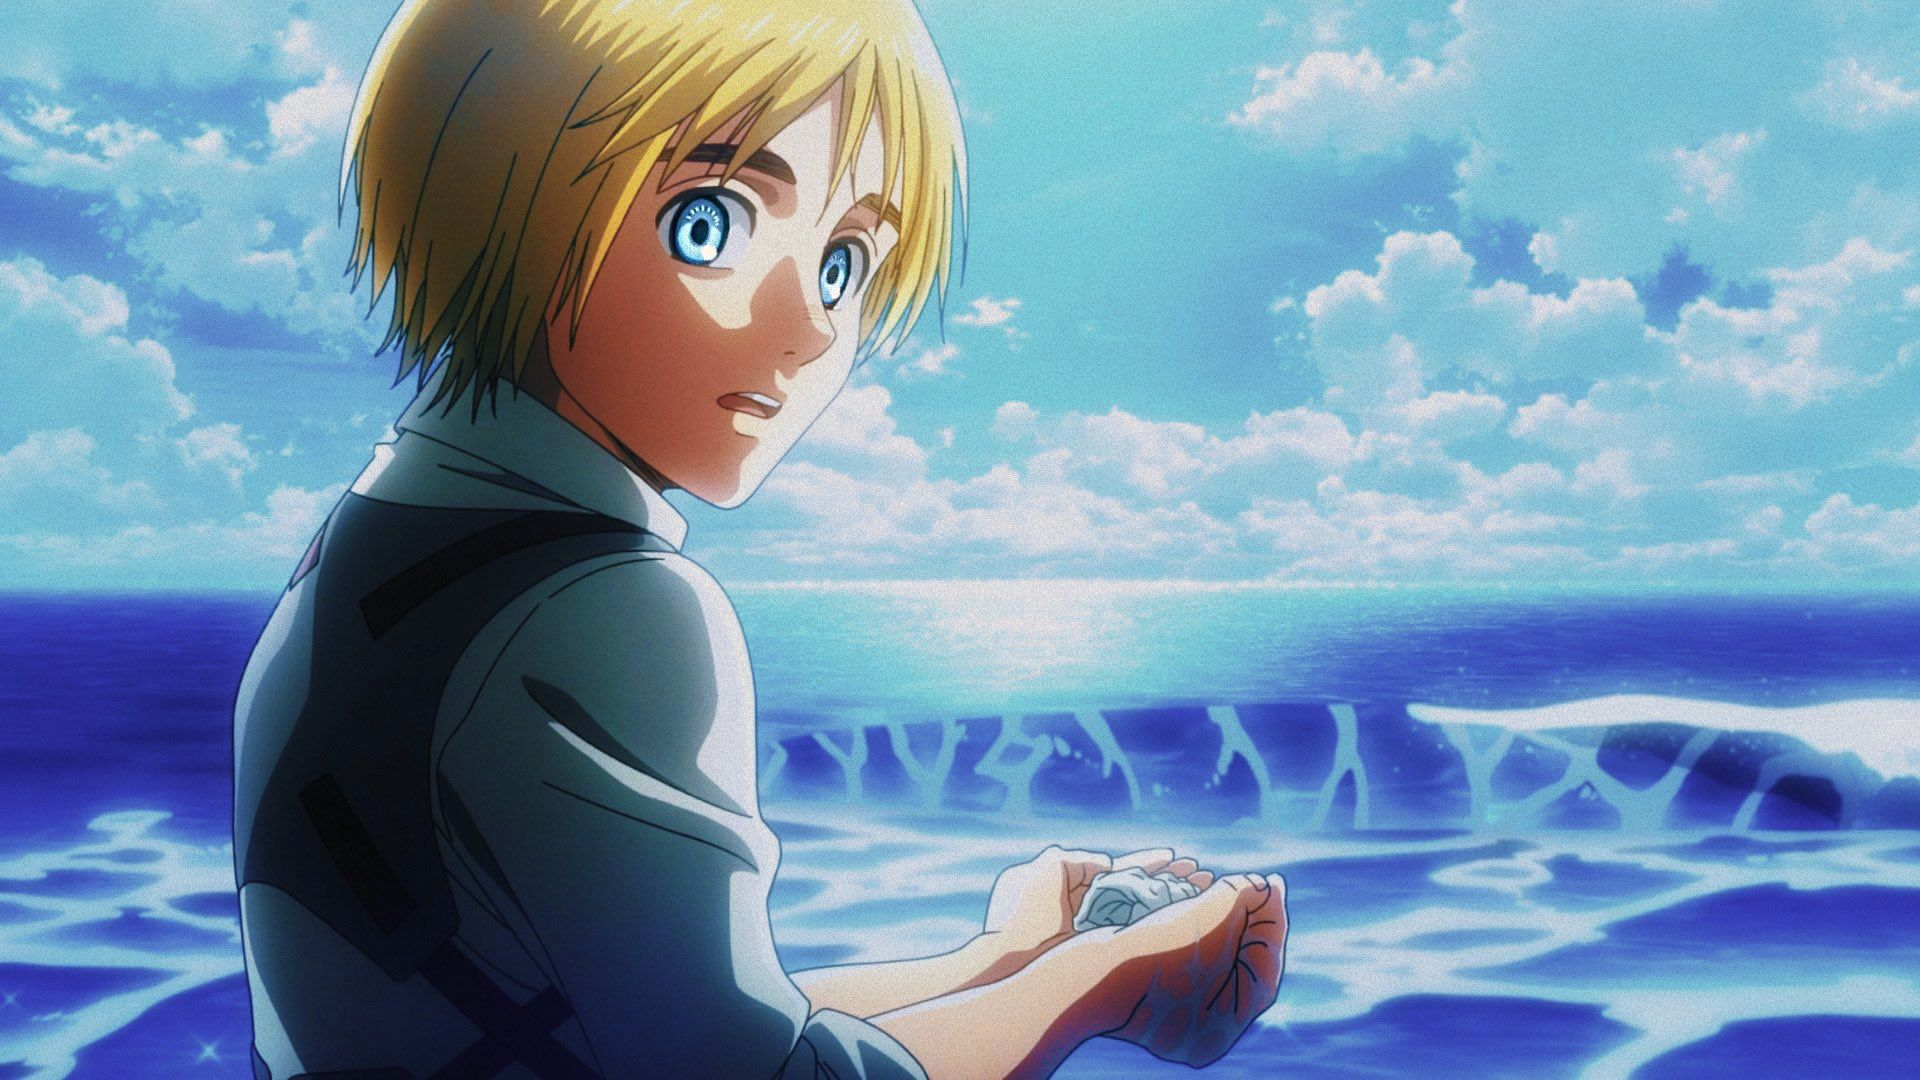 明るい月 On Twitter In 2021 Armin Attack On Titan Anime Attack On Titan